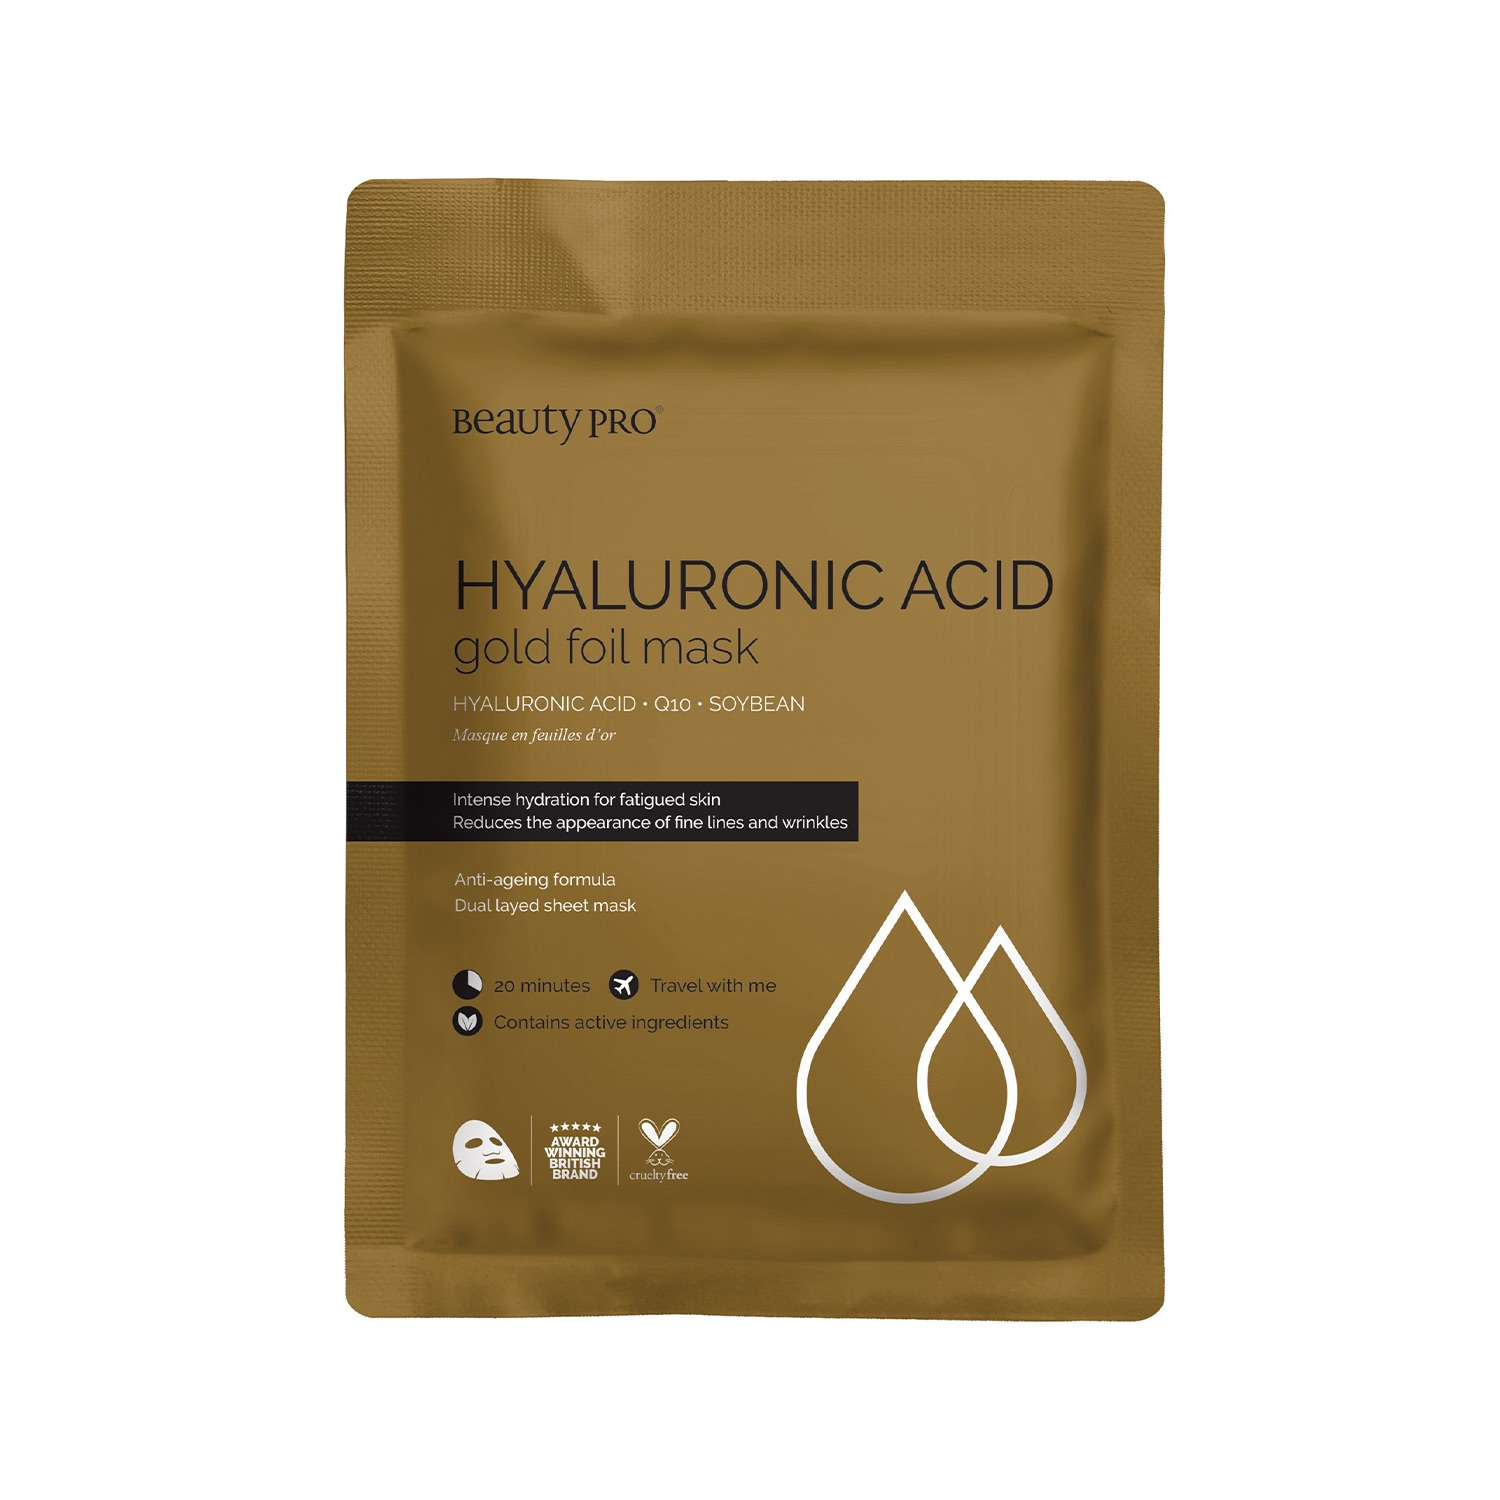 HYALURONIC ACID & Q10 Gold Foil Mask 25ml